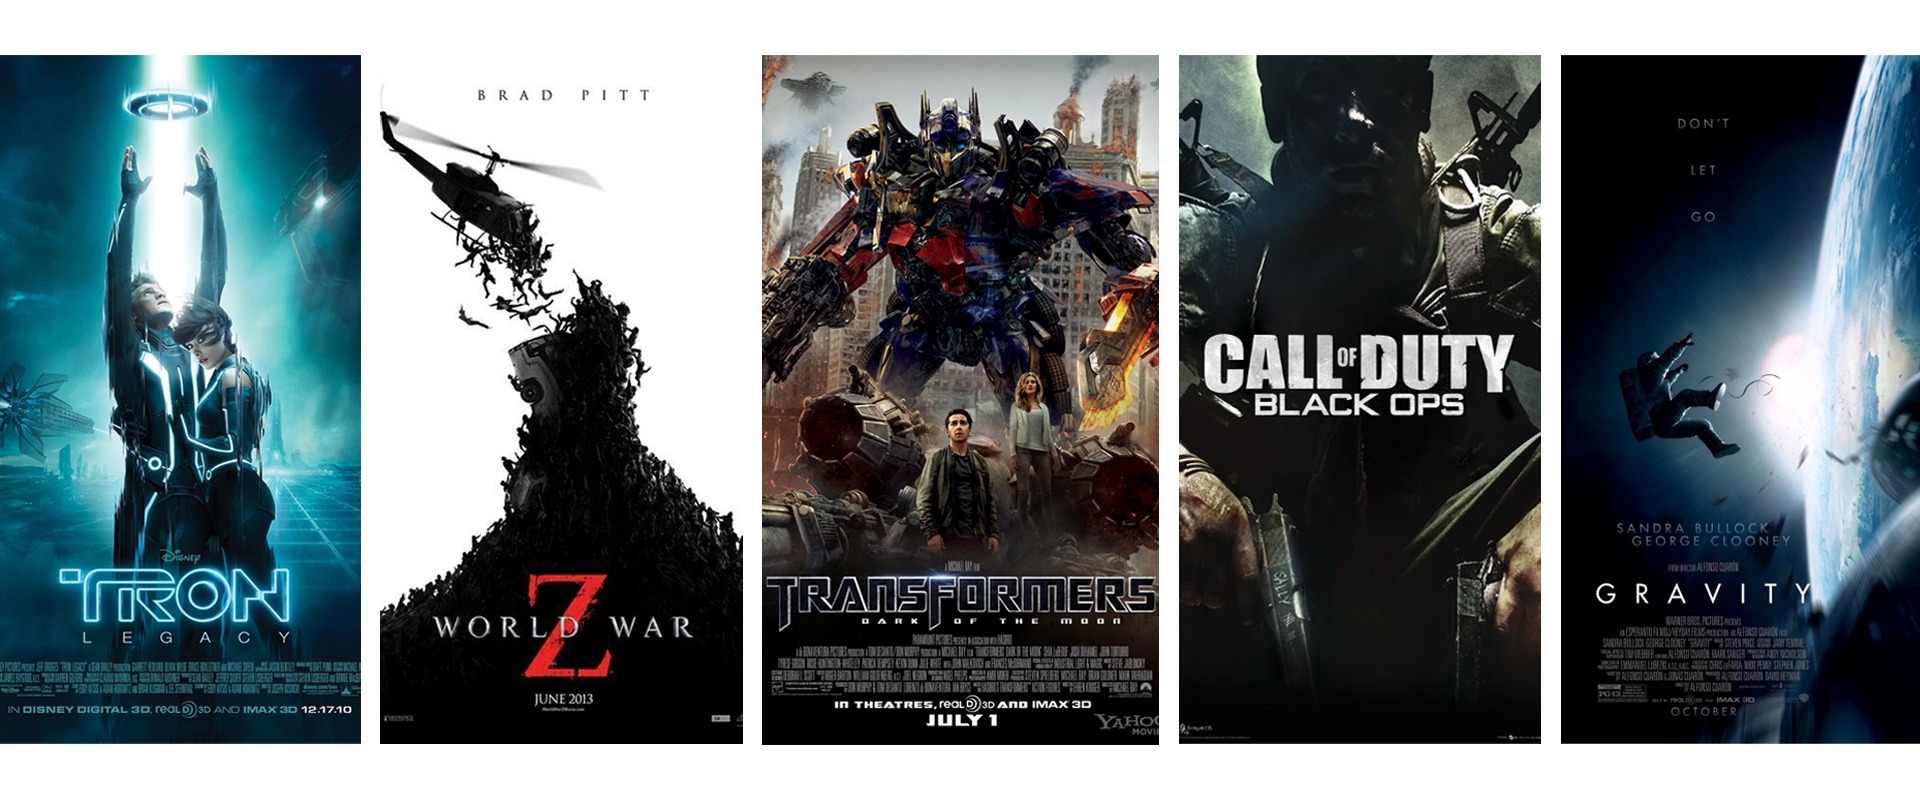 curventa - vicon - cara - tron - world war z - transformers - call of duty black ops - gravity